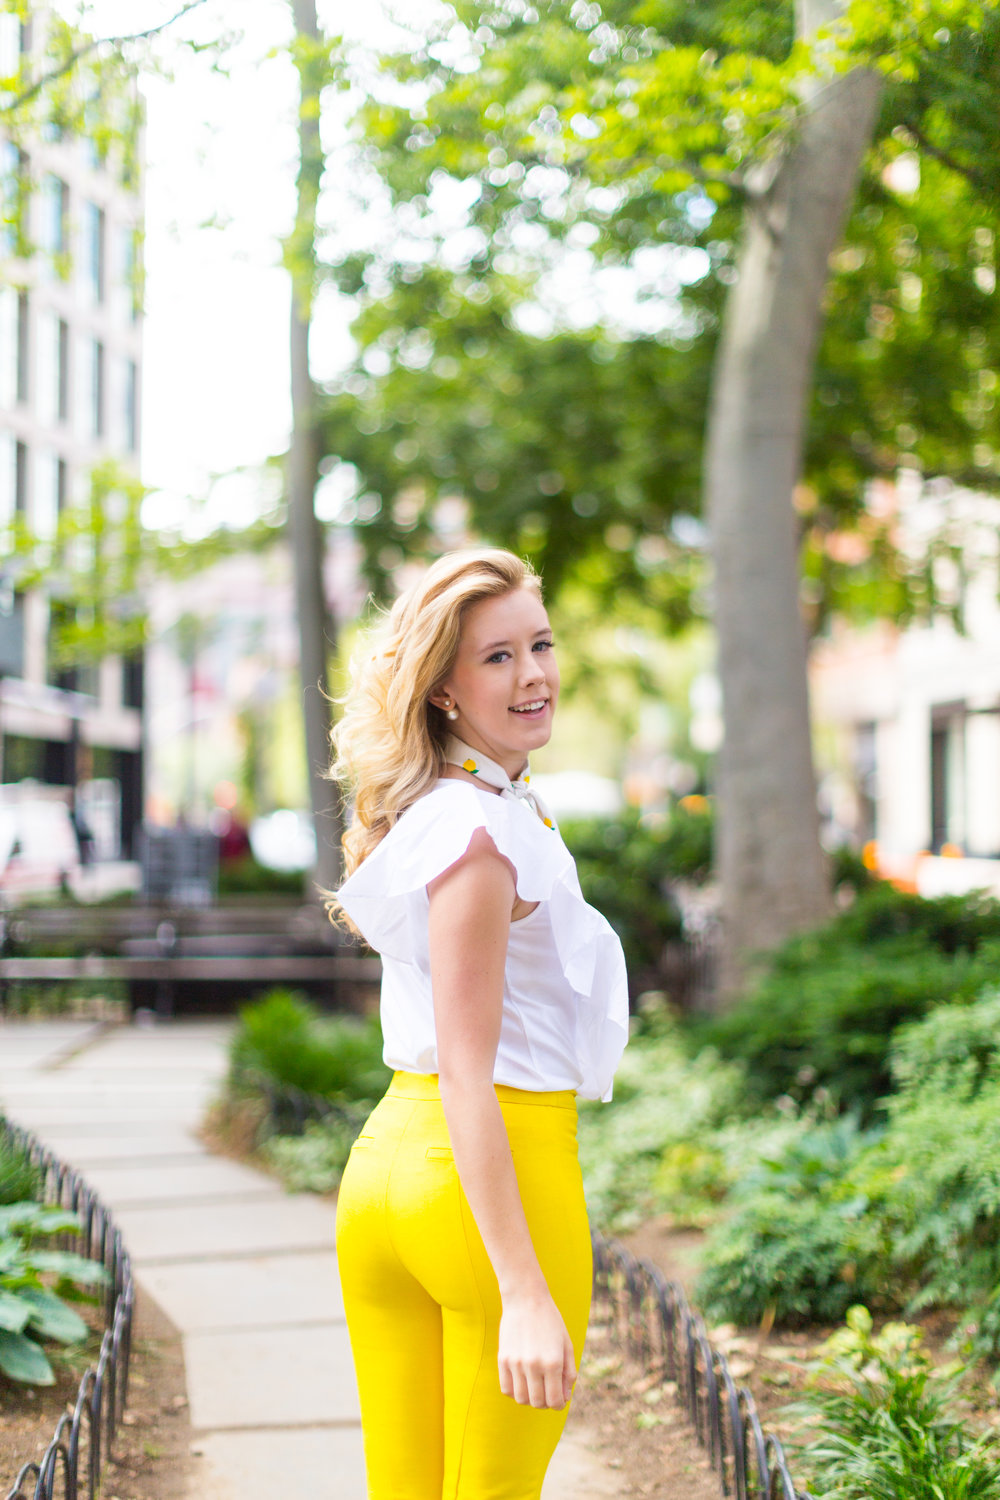 NYC Summer Yellow Lemon Print Outfit-7.jpg